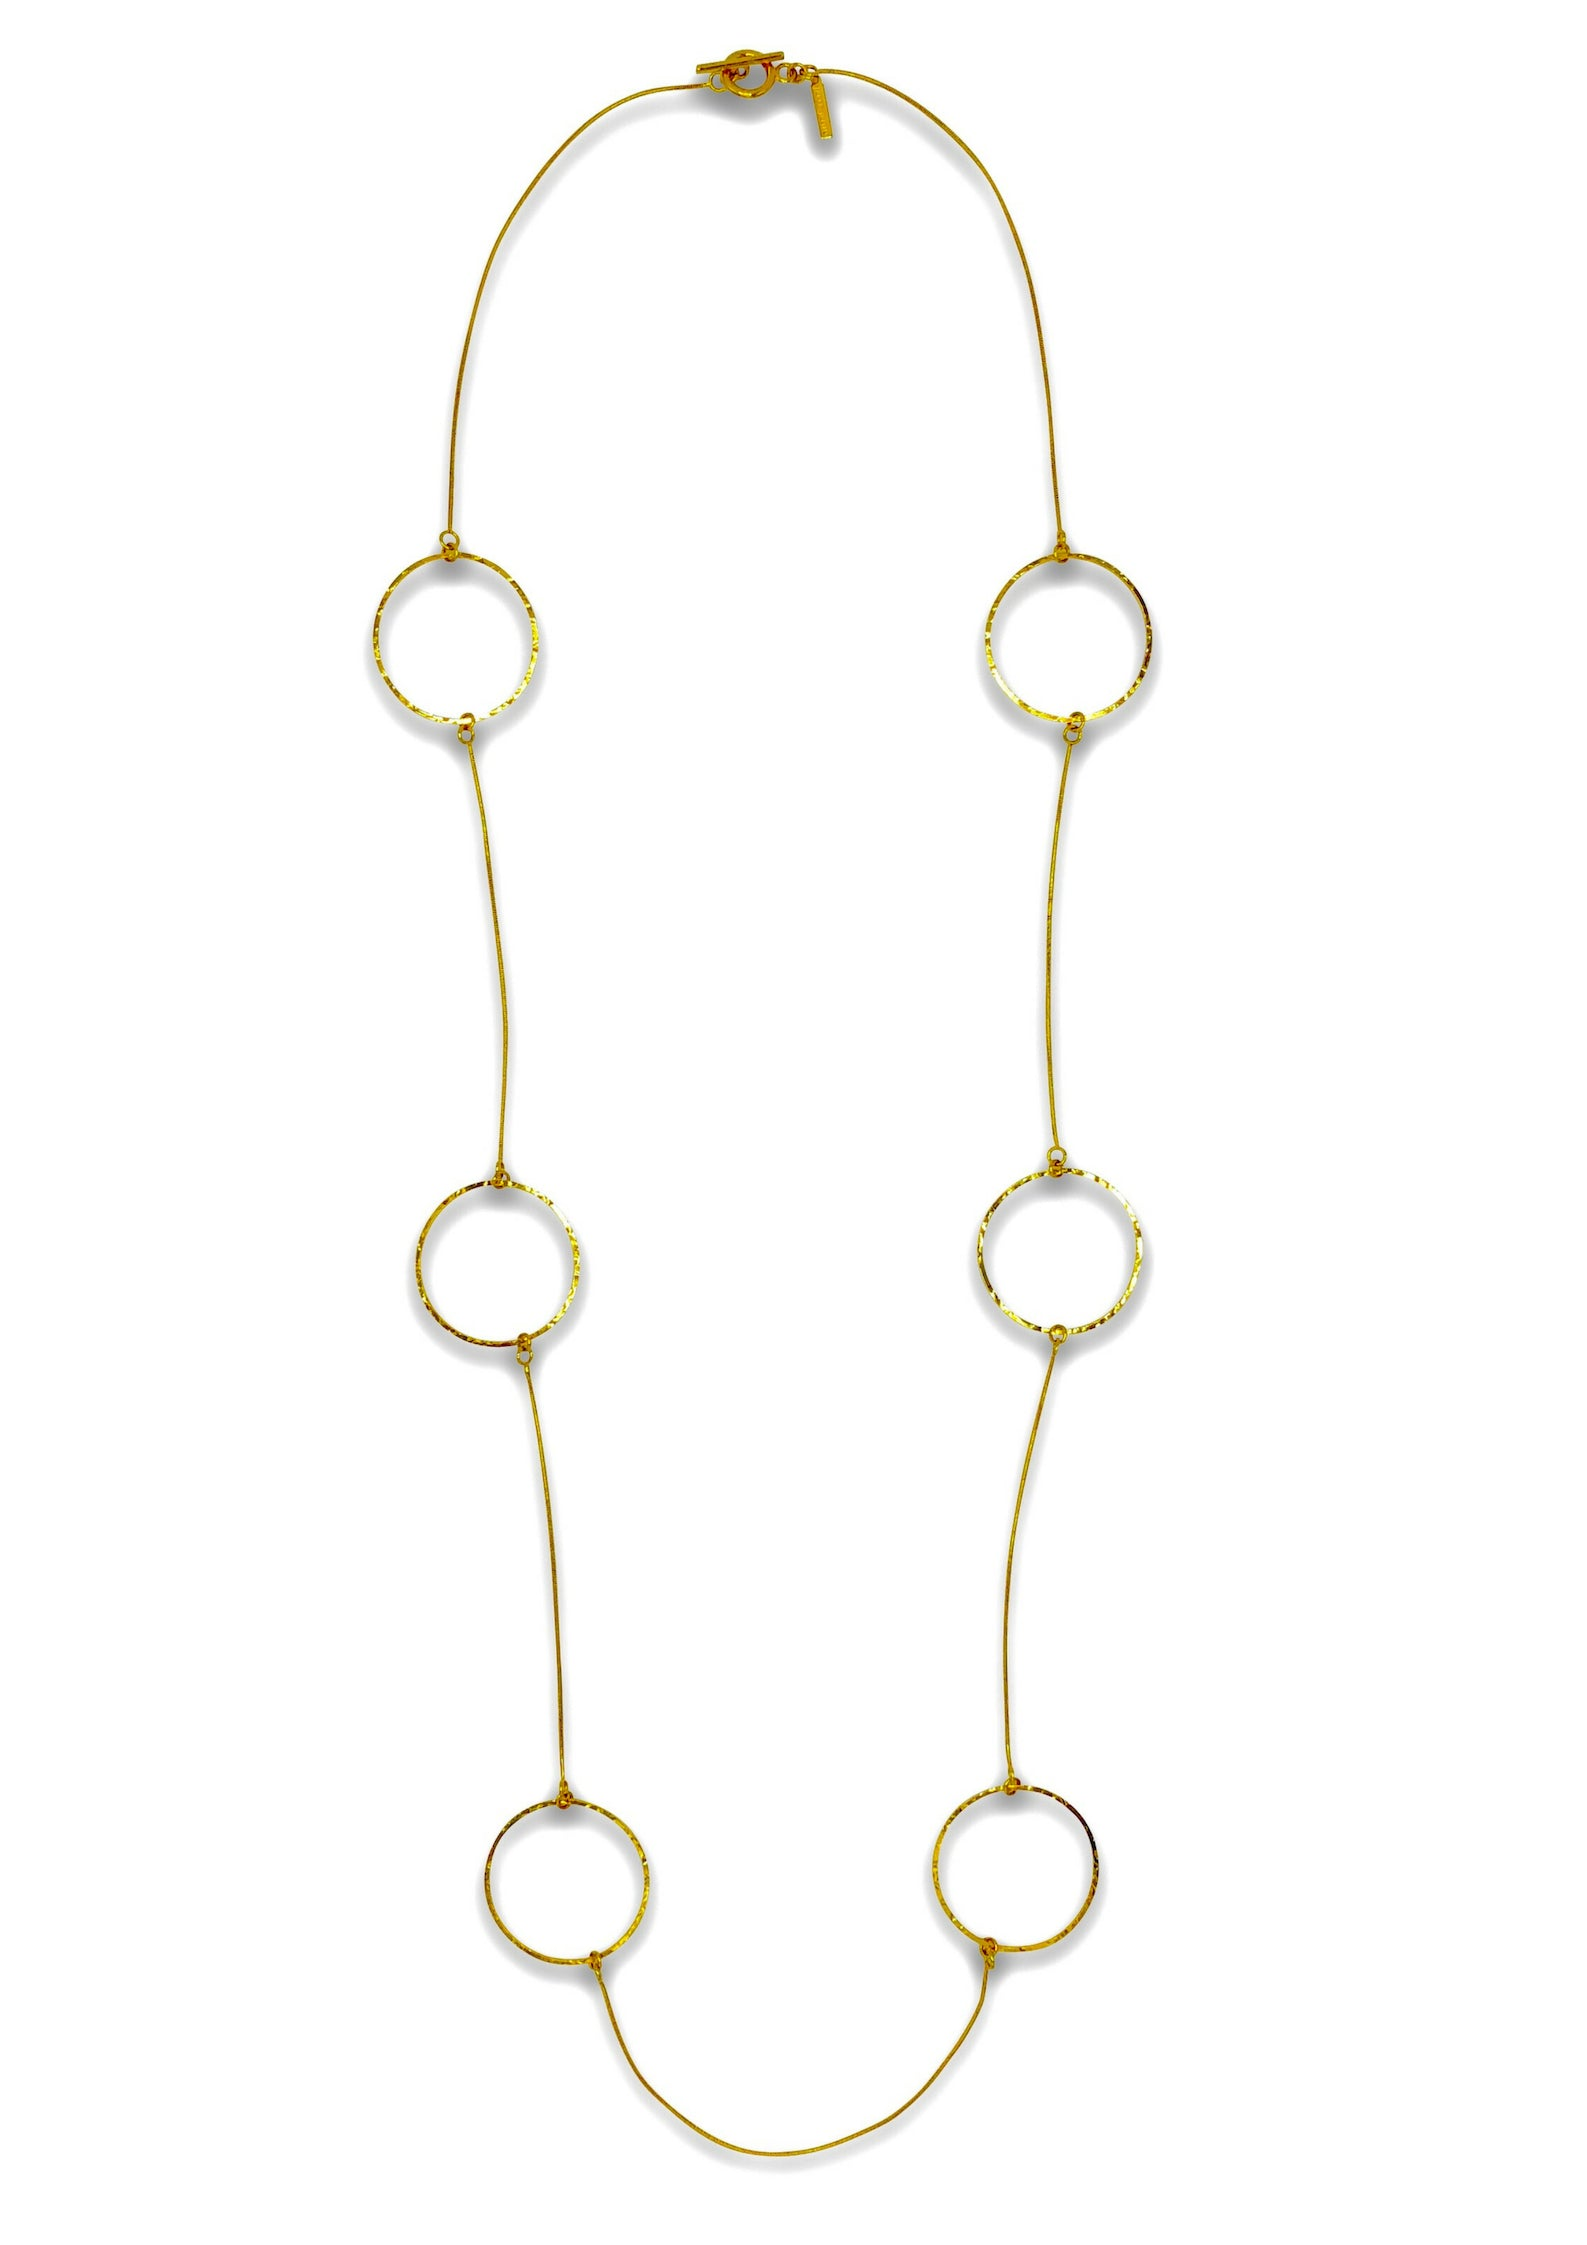 Halo Lindy Textured Gold Hoop Necklace-Necklaces-JAREDJAMIN Jewelry Online-JARED JAMIN